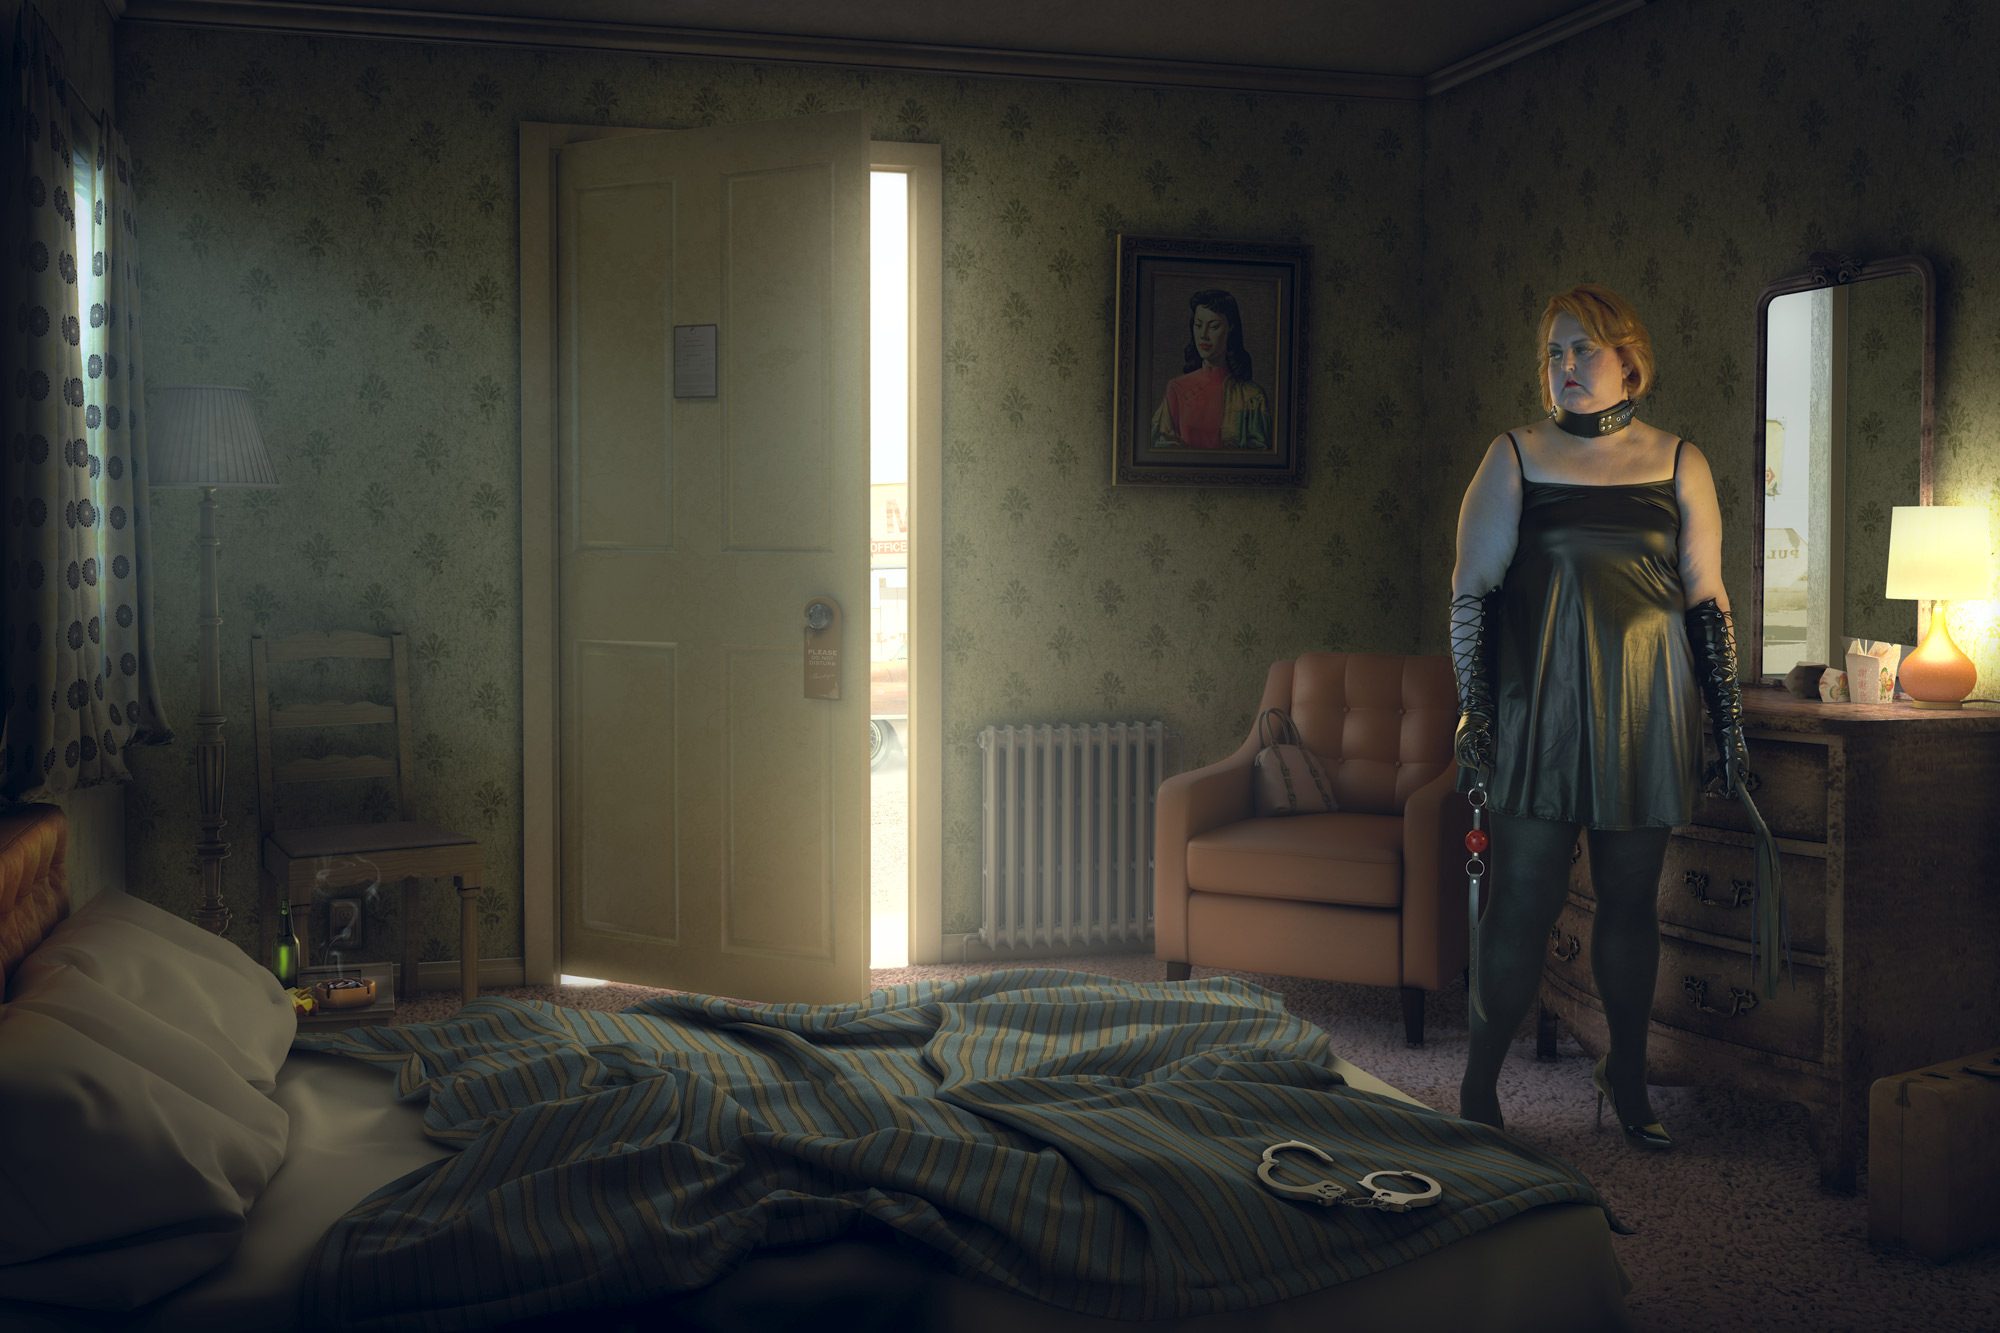 Chris Clor woman in bedroom with whip